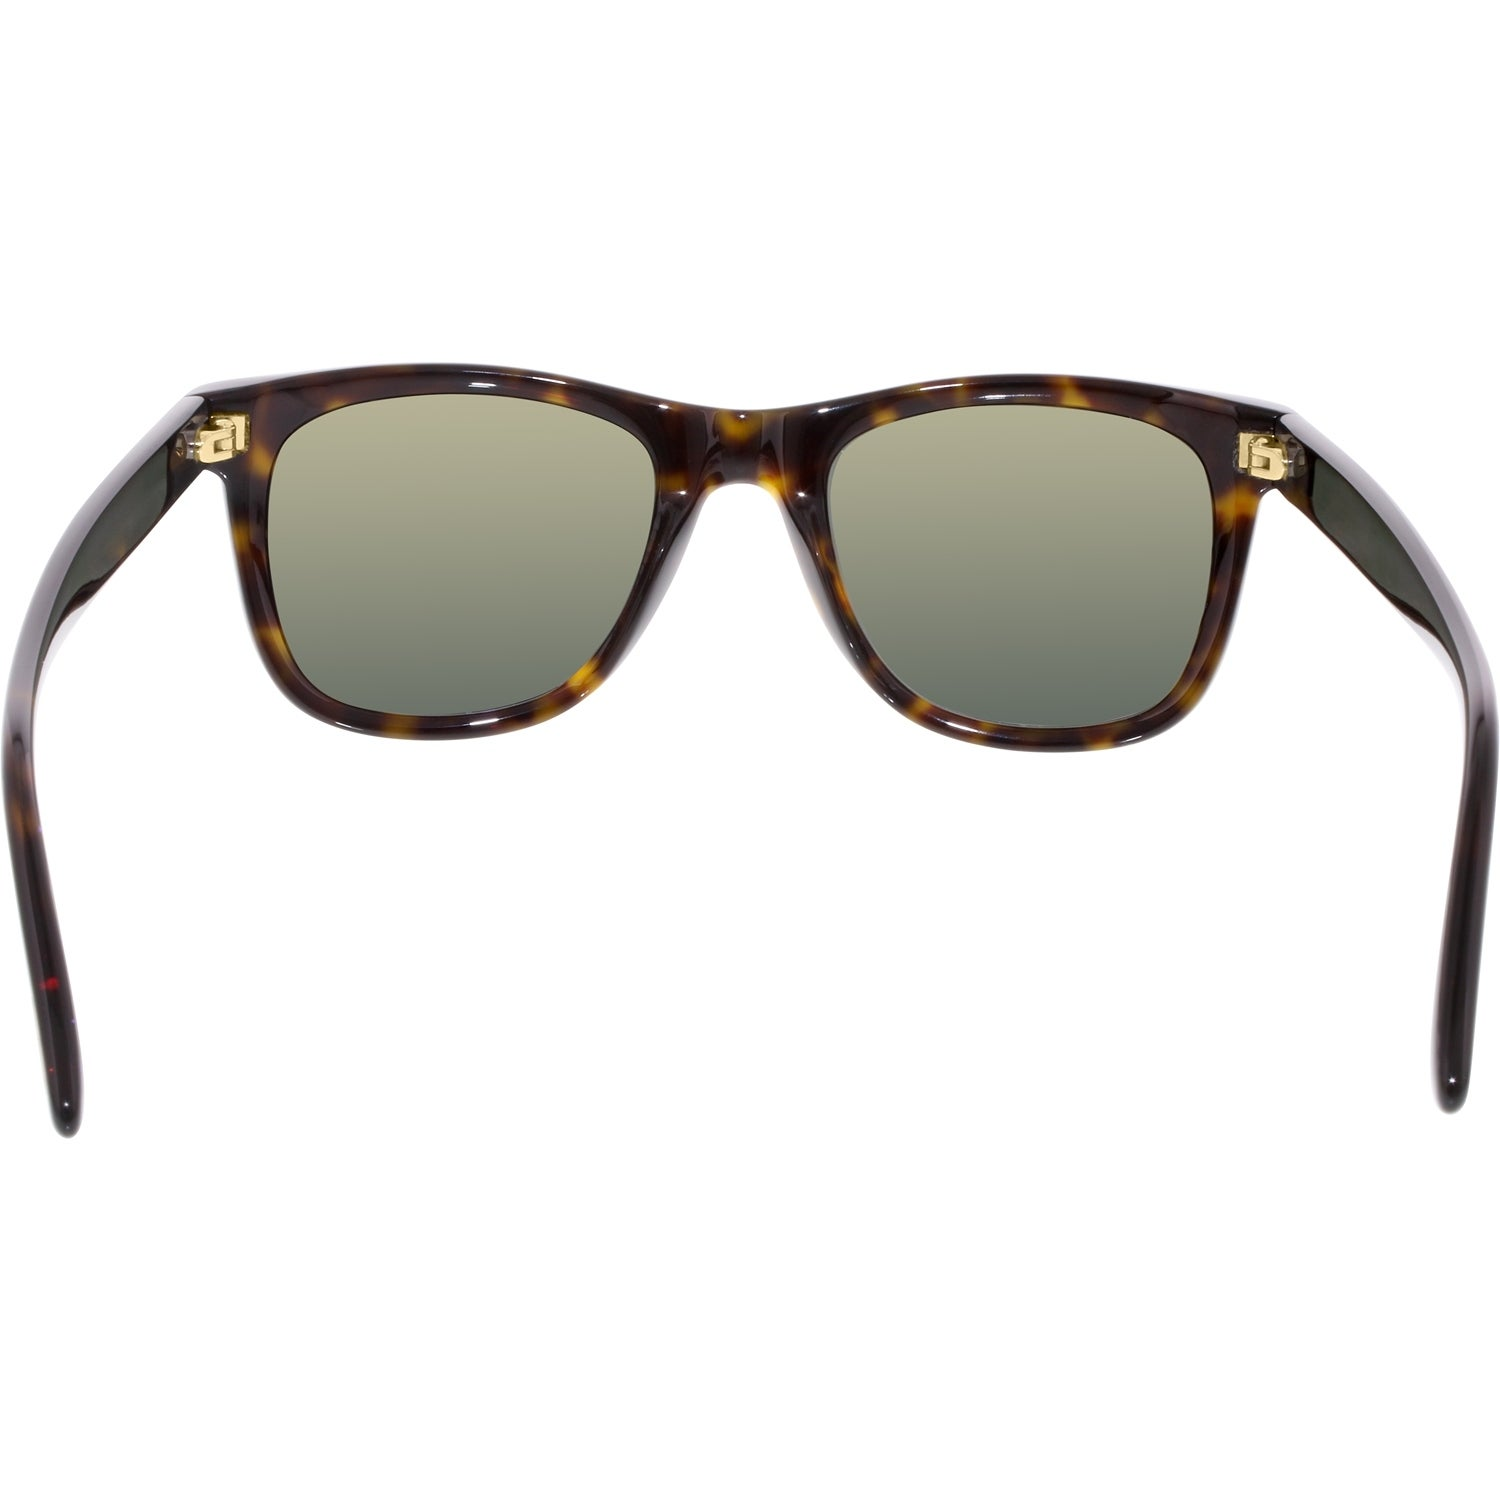 215c85d13b52 Shop Tom Ford Men s Polarized Leo FT0336-56R-52 Tortoiseshell Square  Sunglasses - Free Shipping Today - Overstock - 18901399